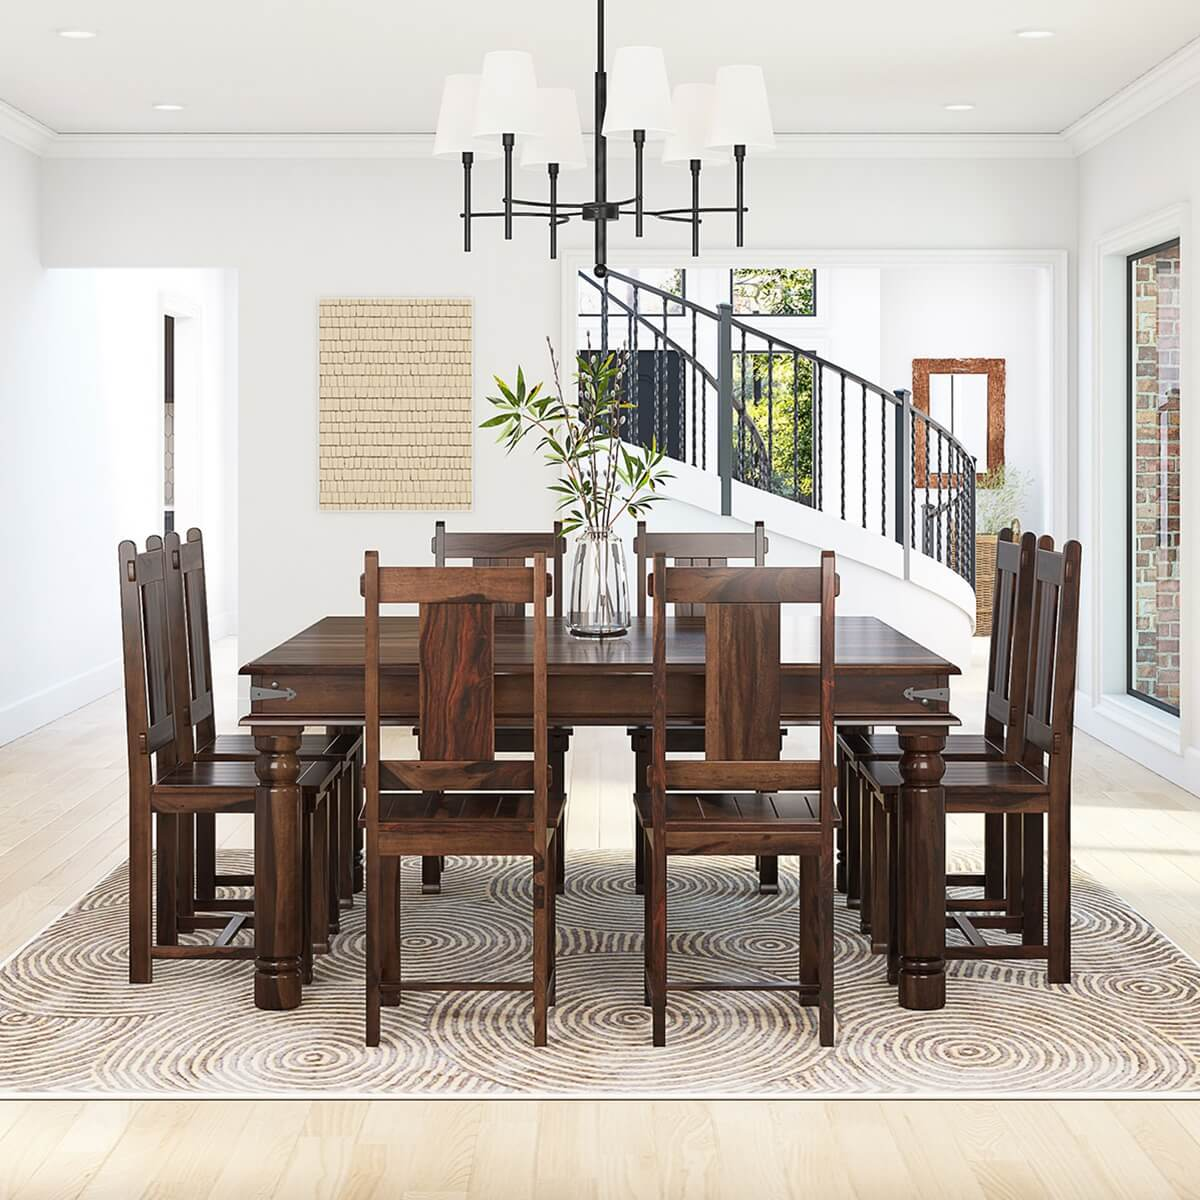 8 Chair Square Dining Table: Richmond Rustic Solid Wood Large Square Dining Room Table